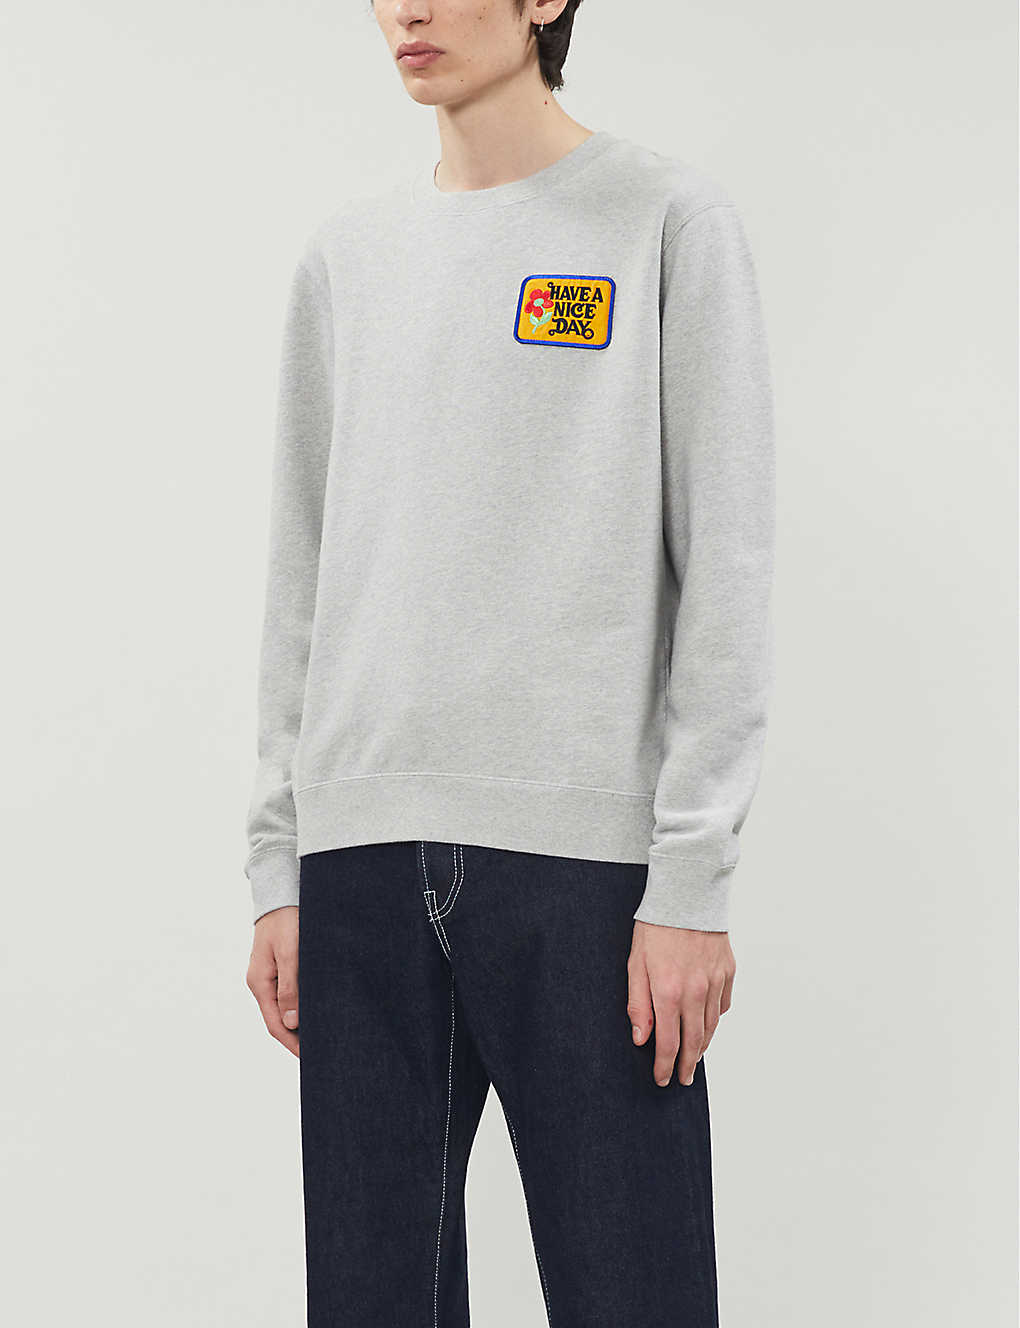 SANDRO: Have a Nice Day-patch cotton-jersey sweatshirt